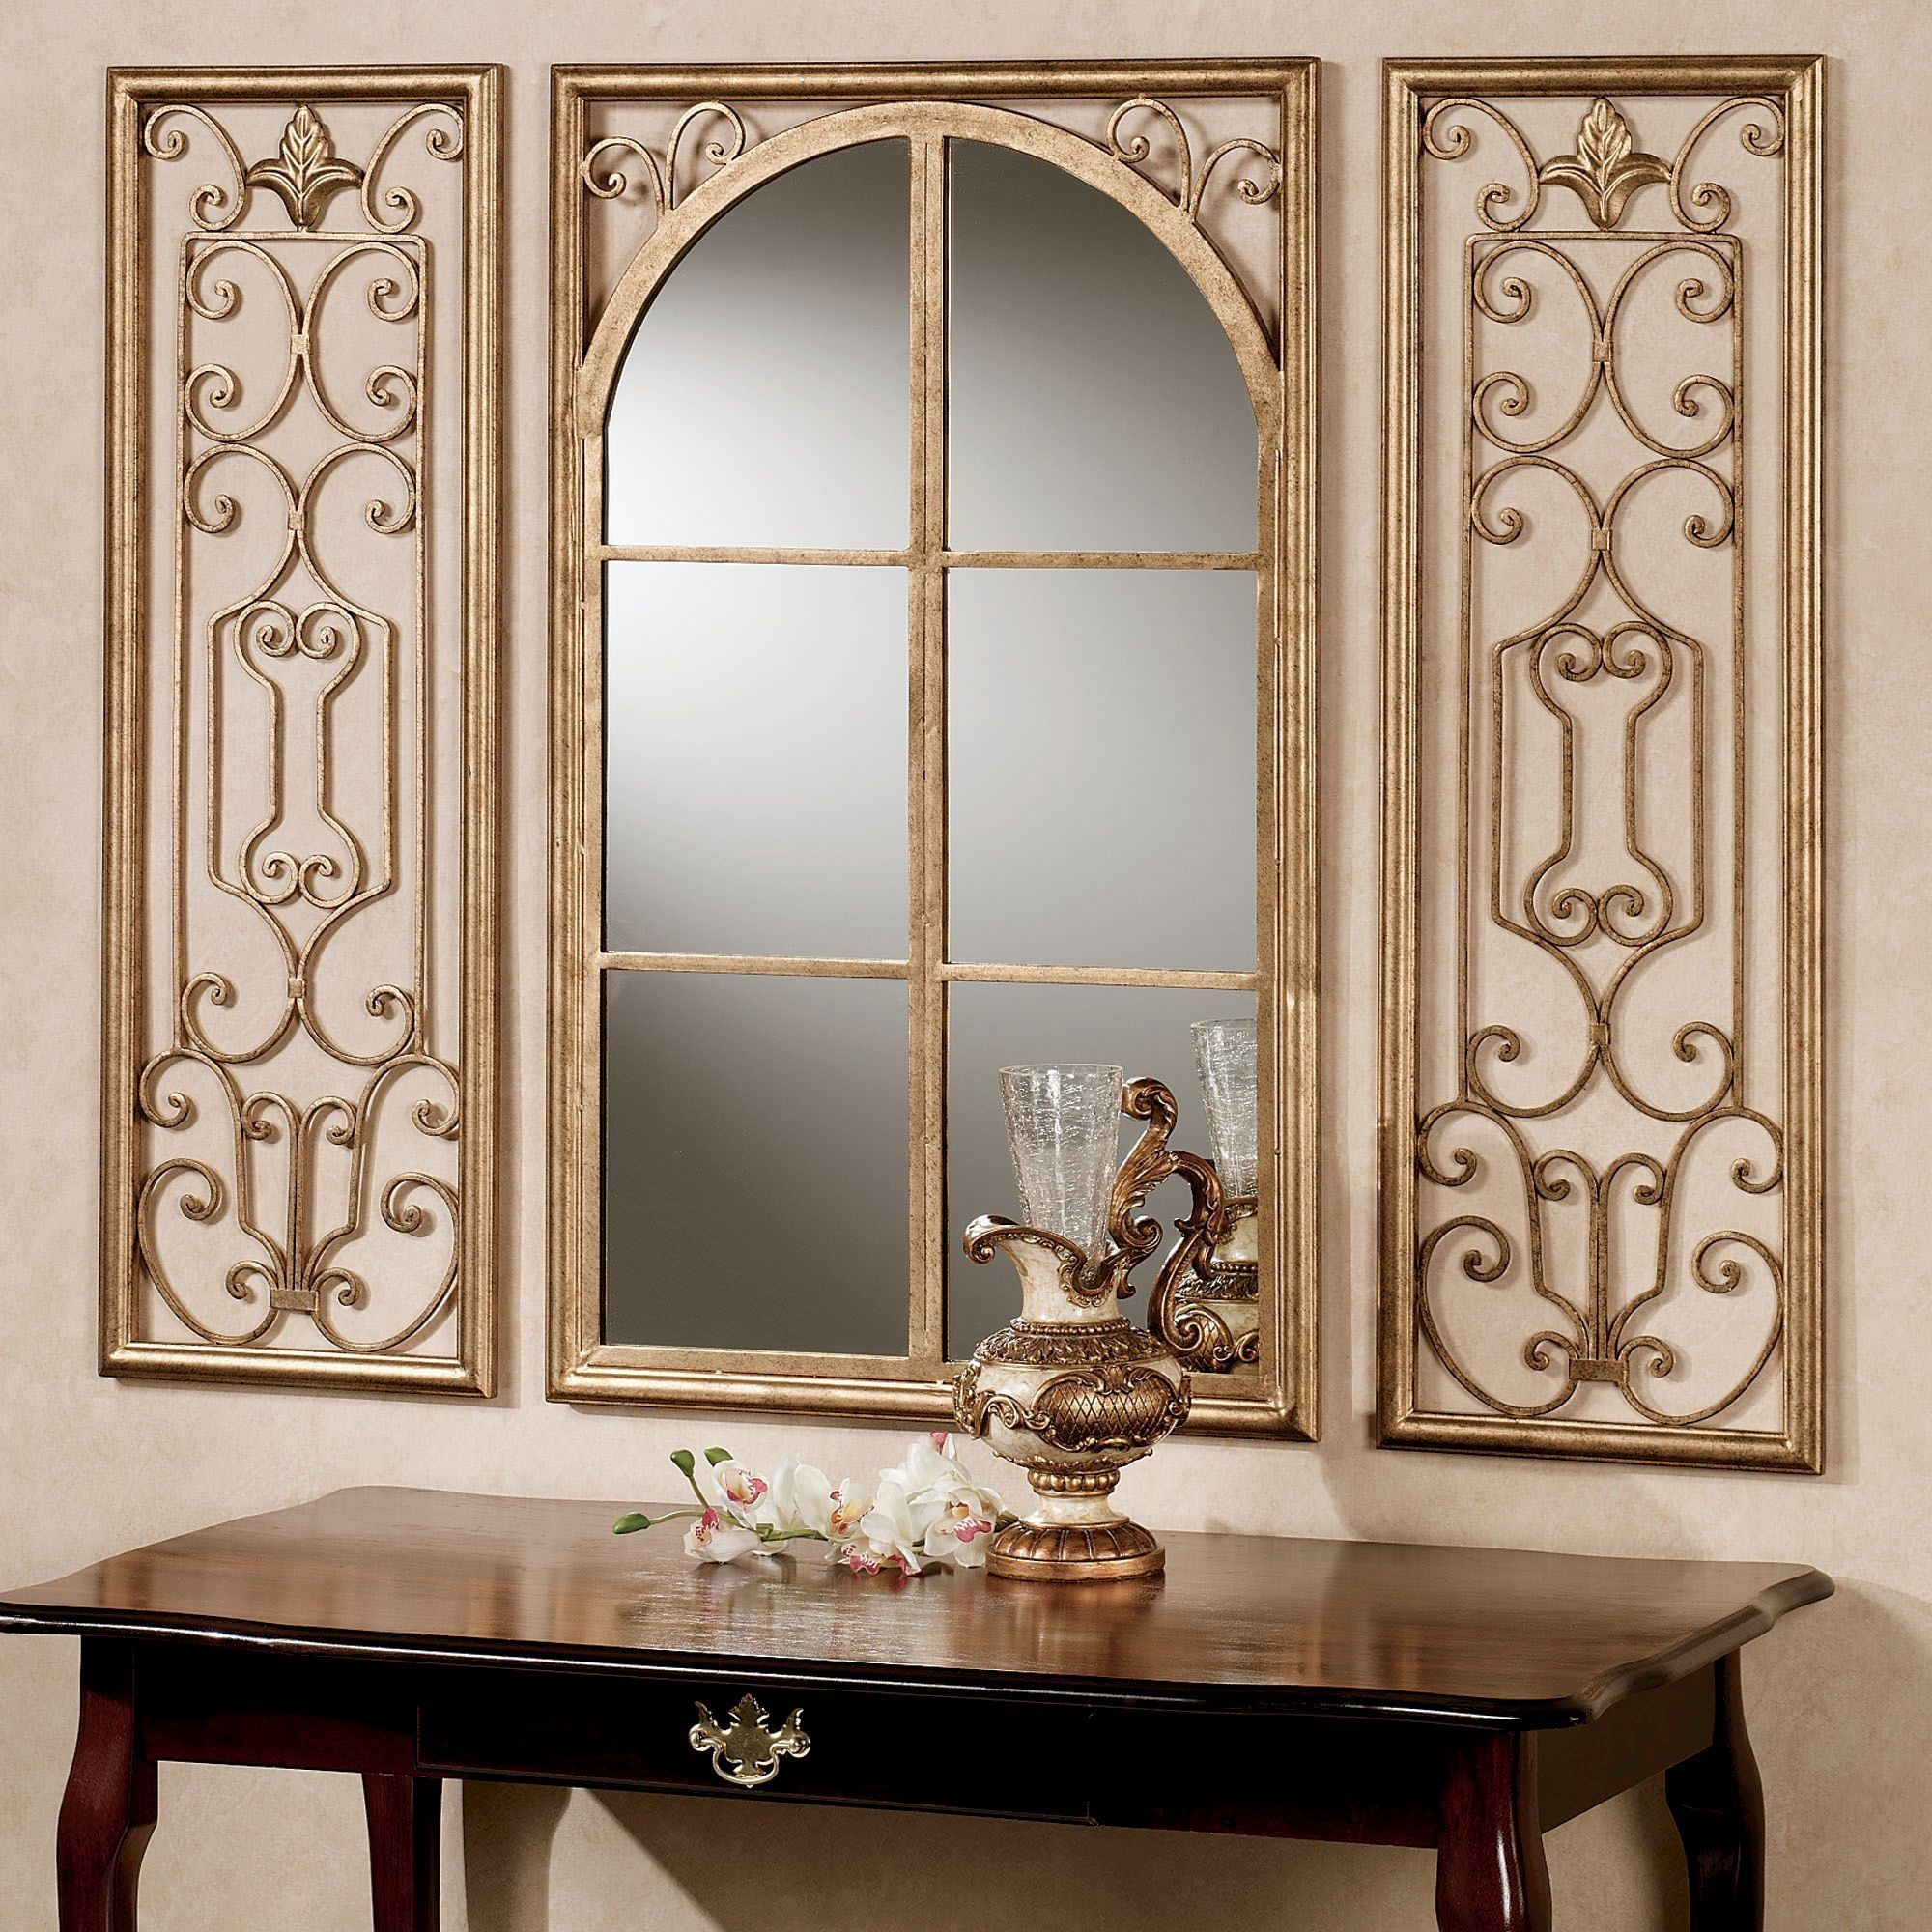 Decorative Gold Wall Mirrors